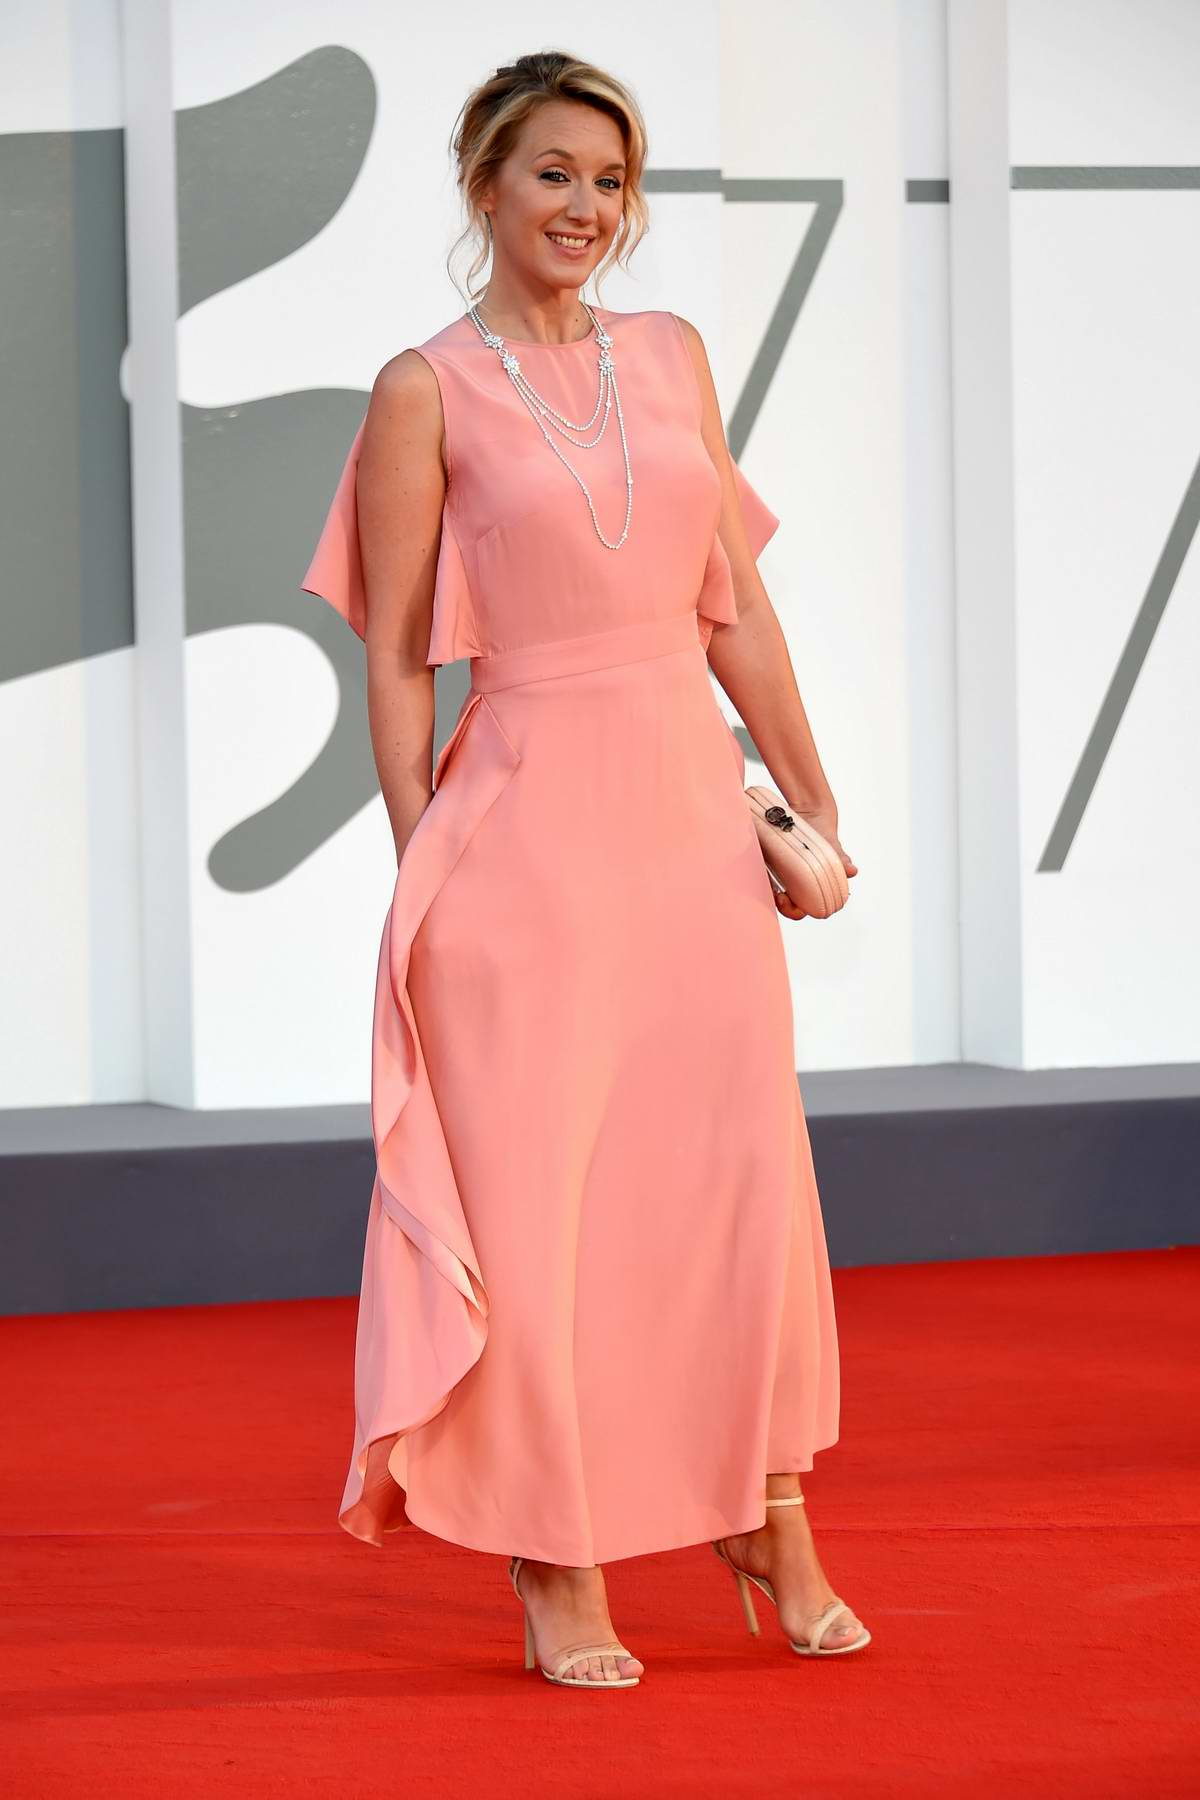 Ludivine Sagnier attends the 'Lovers' Premiere during the 77th Venice Film Festival in Venice, Italy